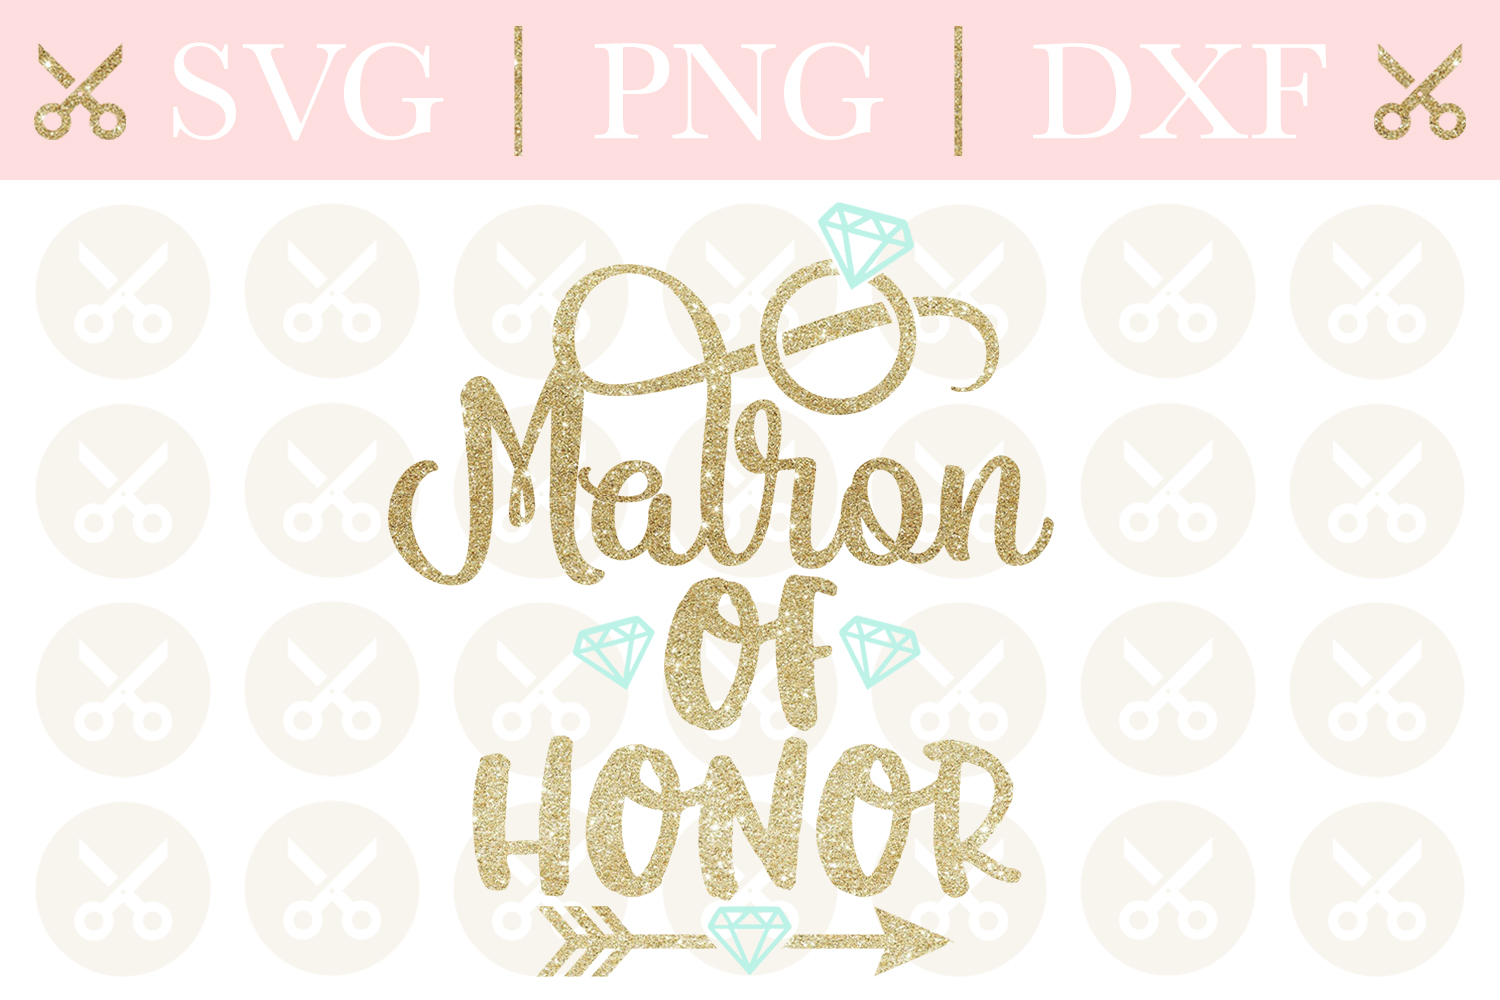 Matron Of Honor Svg Wedding Svg Bridesmaid Svg Cutting File example image 1